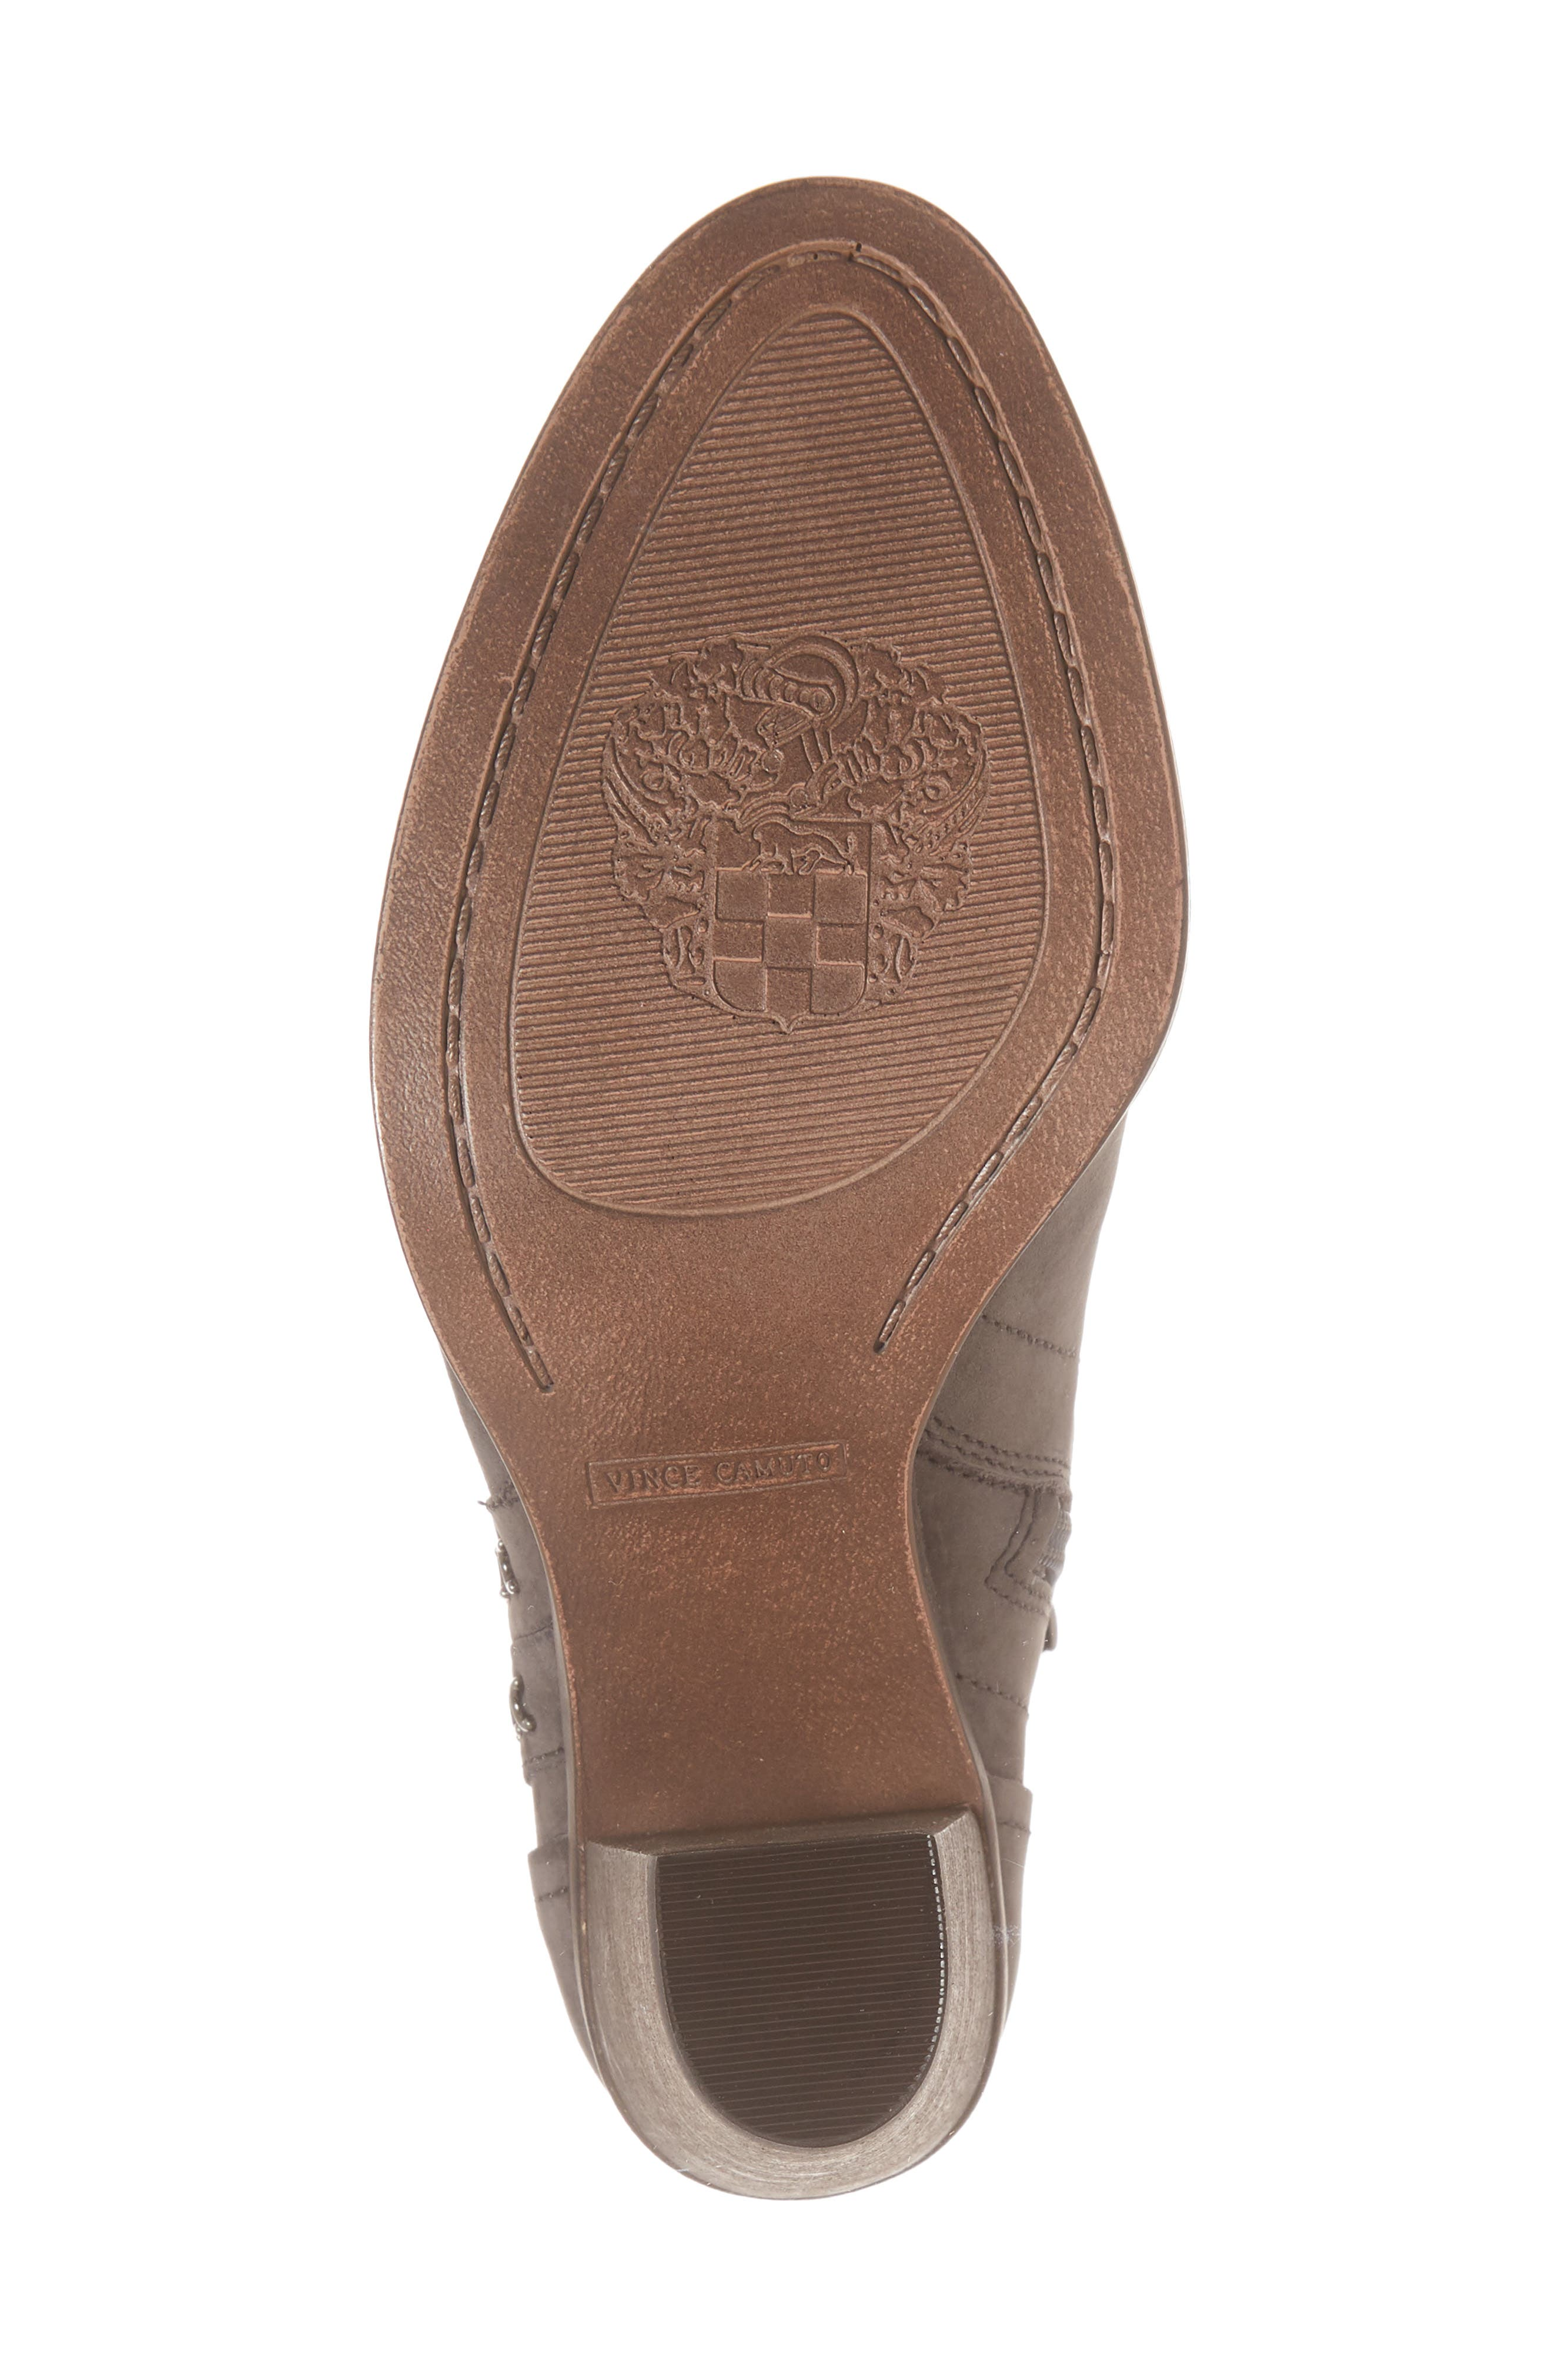 Finchie Bootie,                             Alternate thumbnail 6, color,                             Greystone Leather